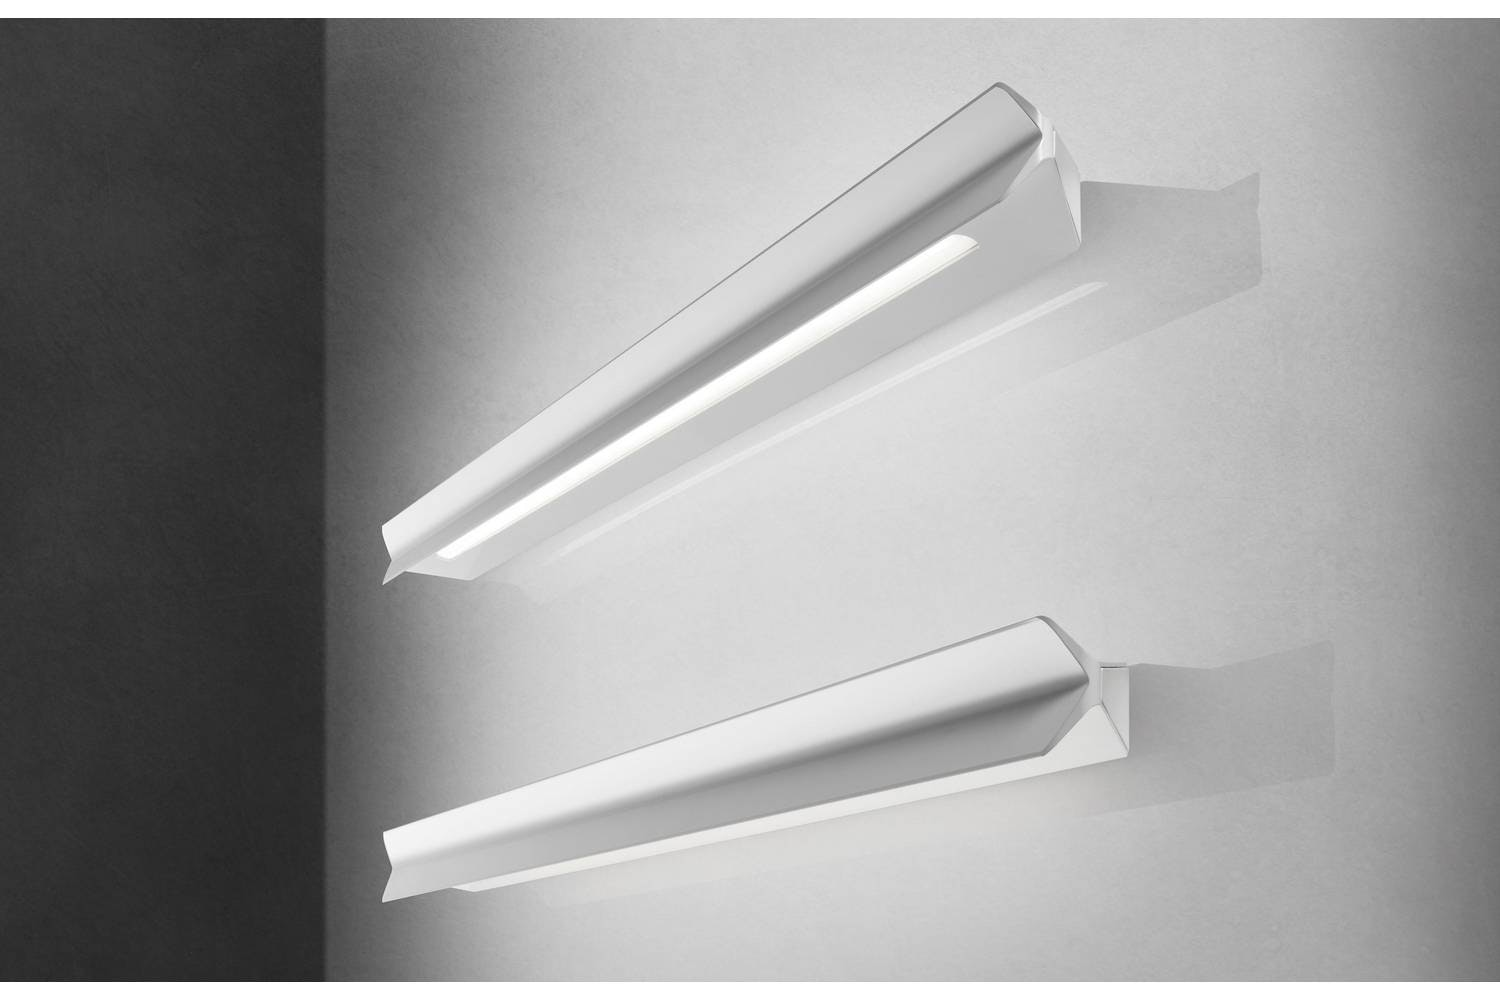 Falena Ceiling/Wall Lamp by Lucidi & Pevere for Foscarini